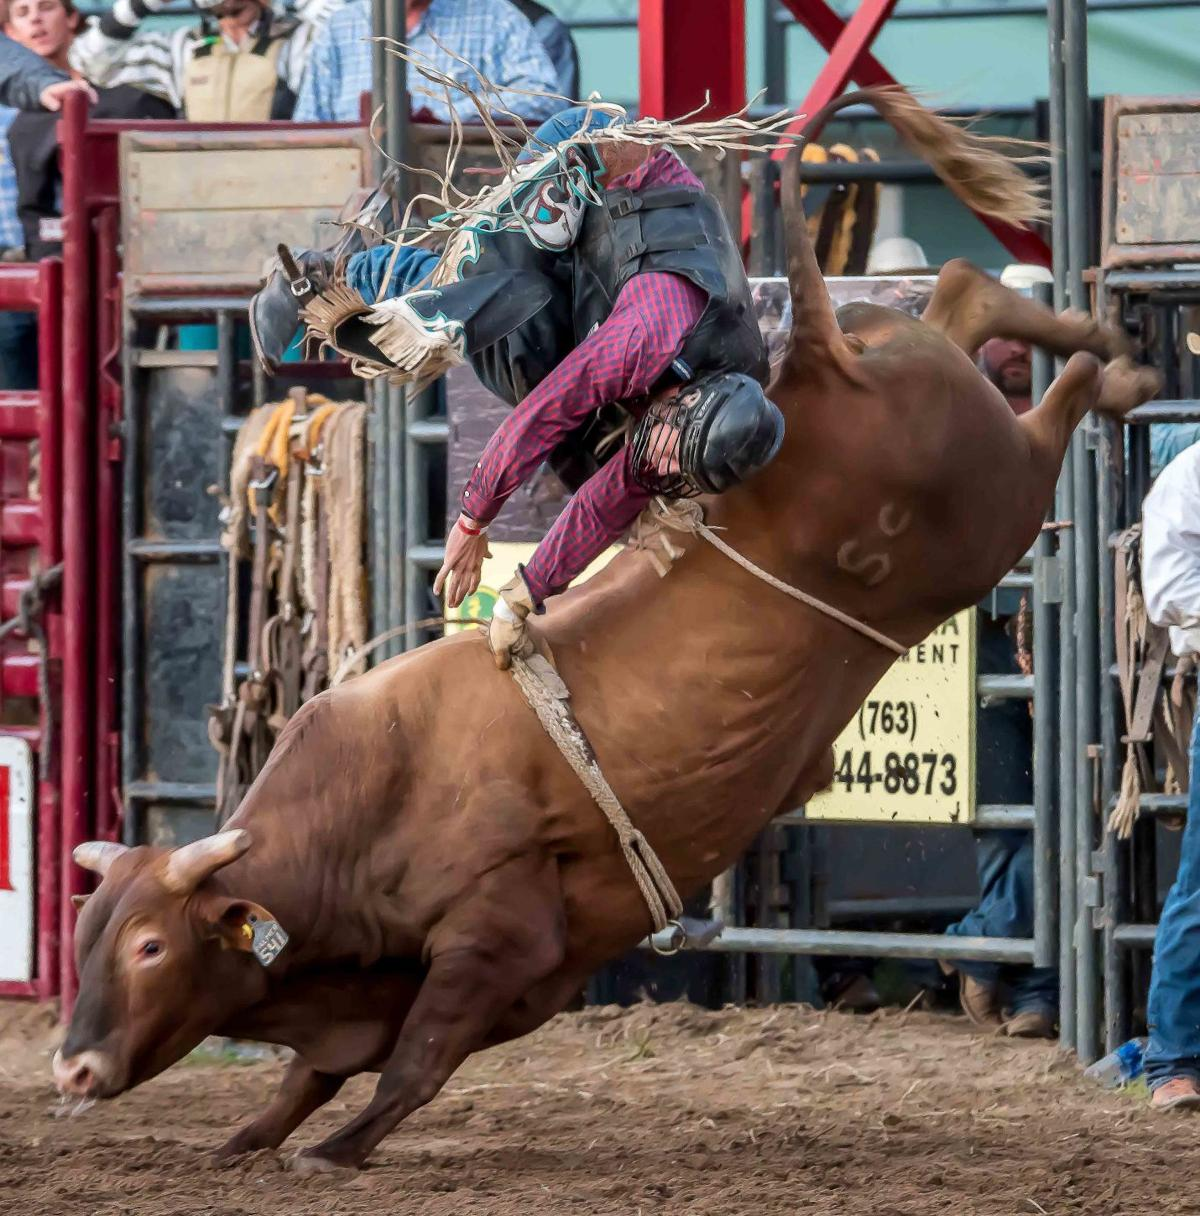 Action as hot as the temperature highlights annual Rodeo